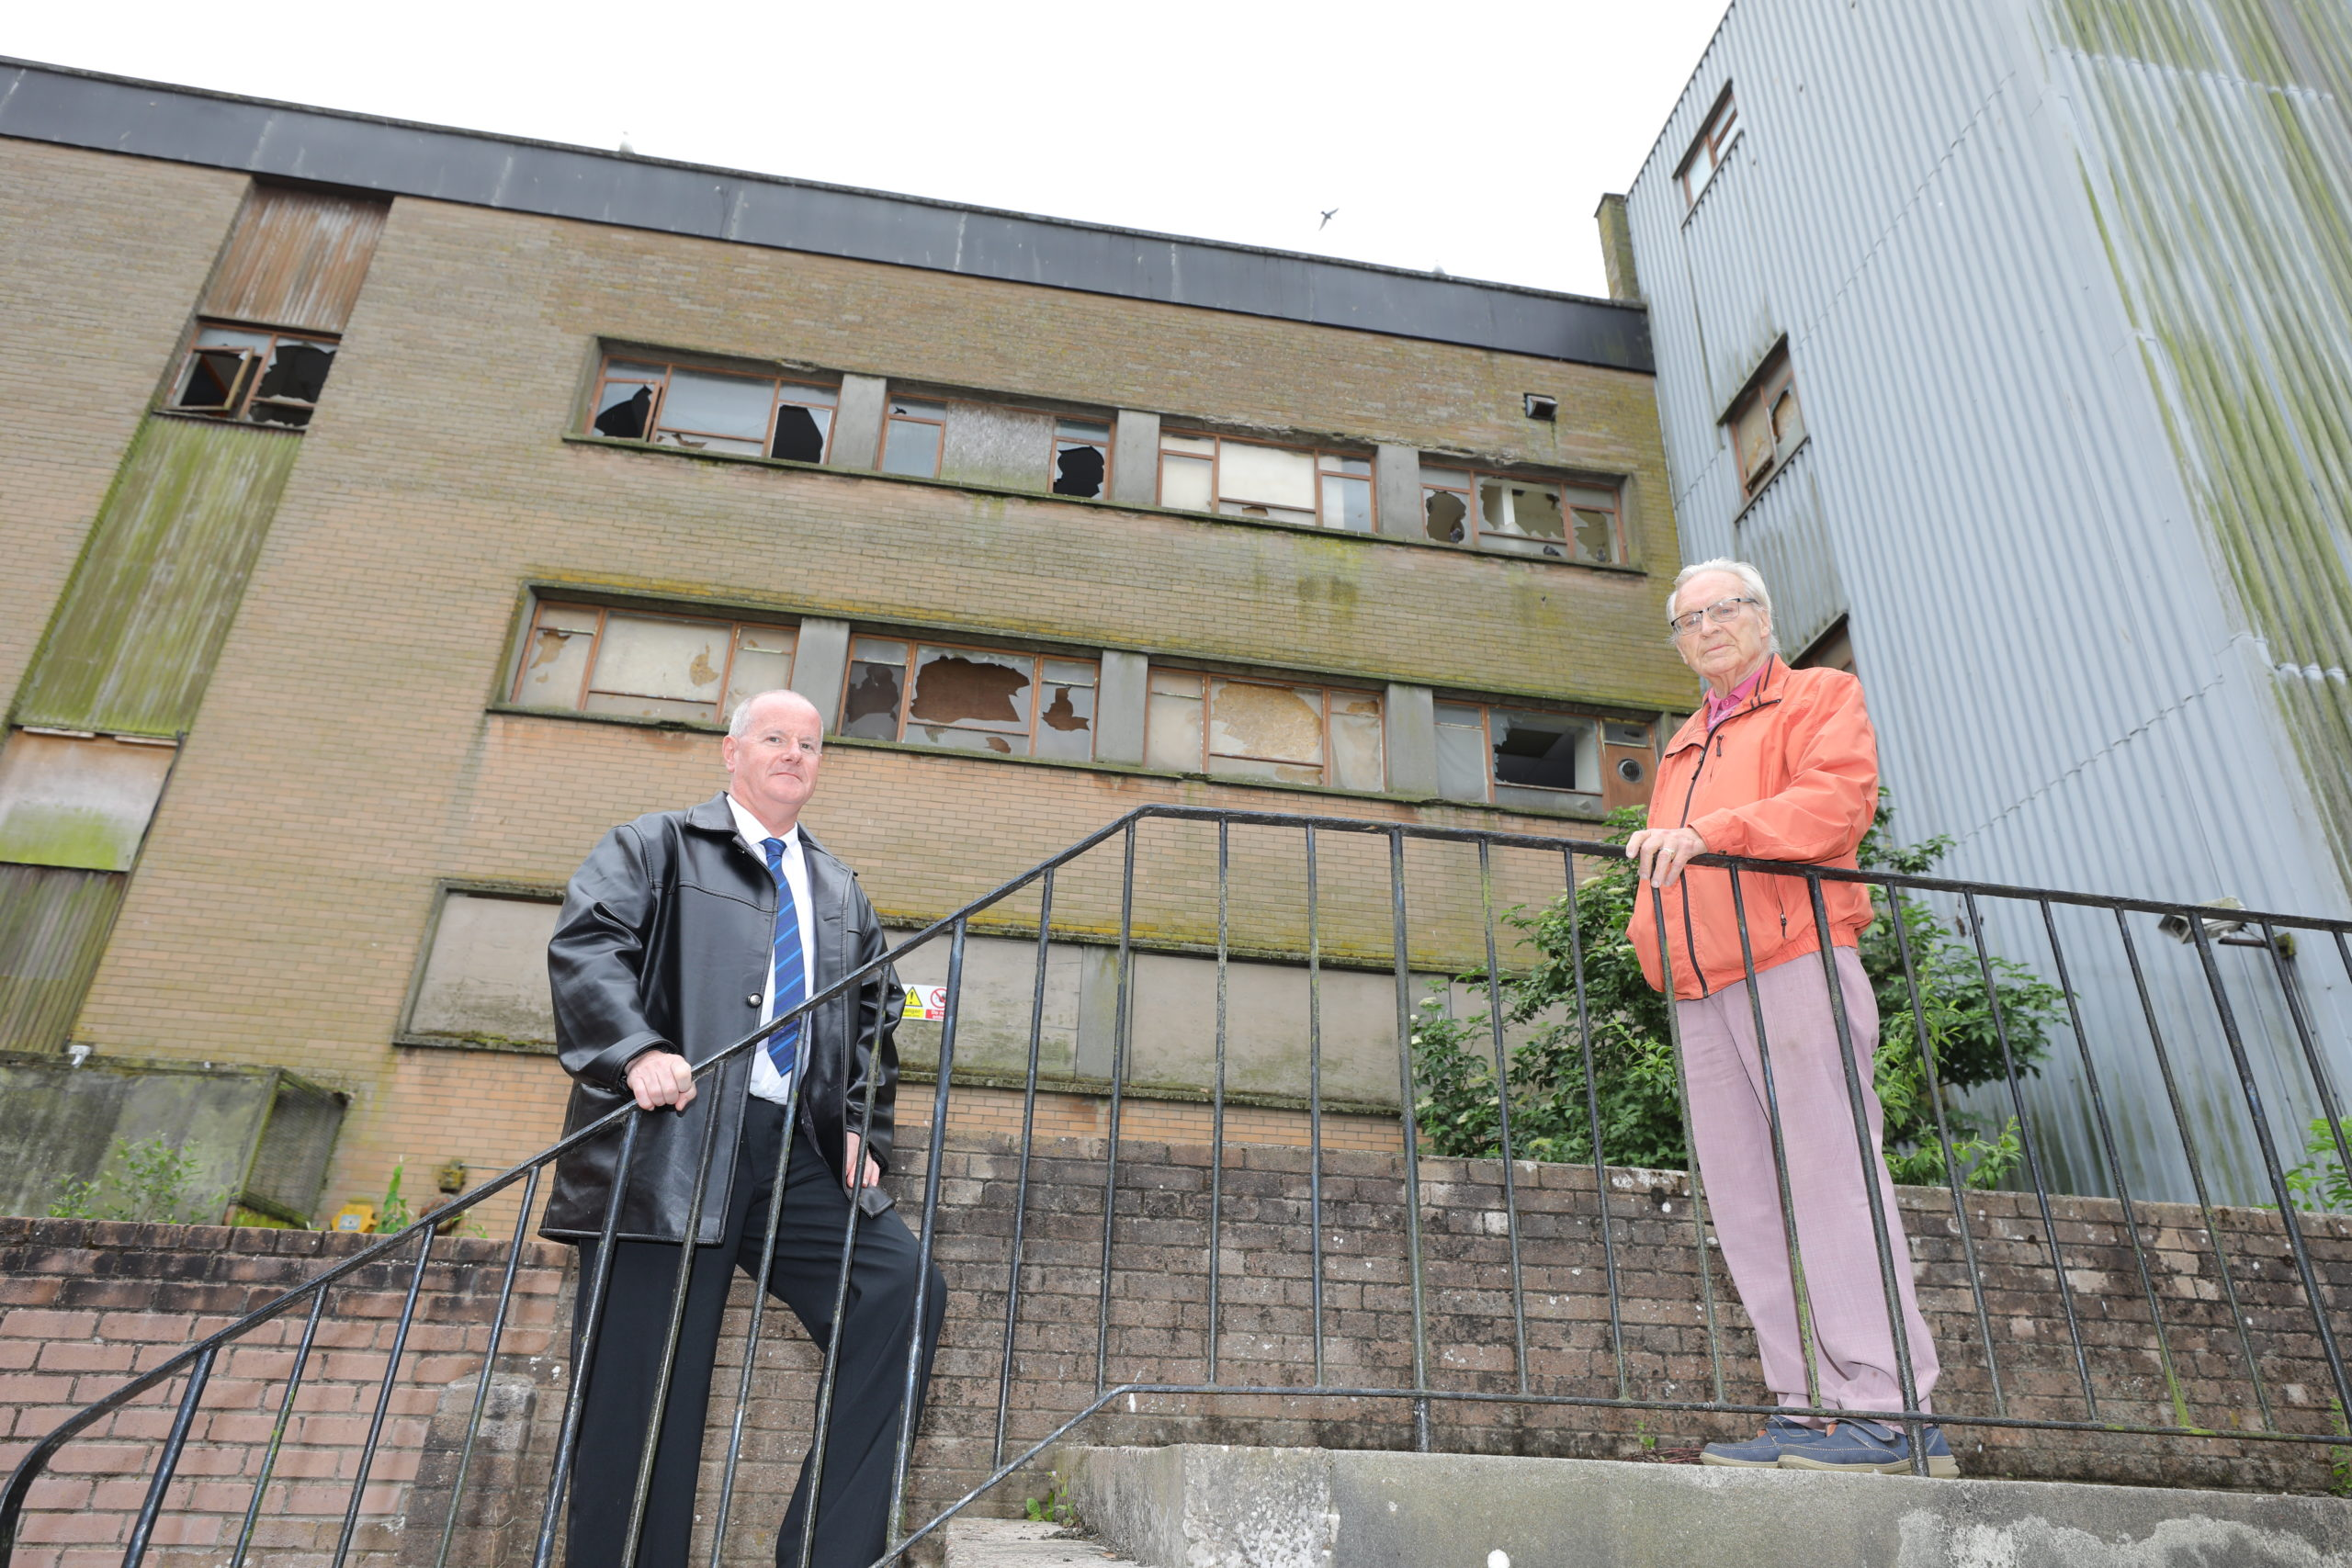 John Goodman and Ron Page have welcomed the announcement of work at the dilapidated building